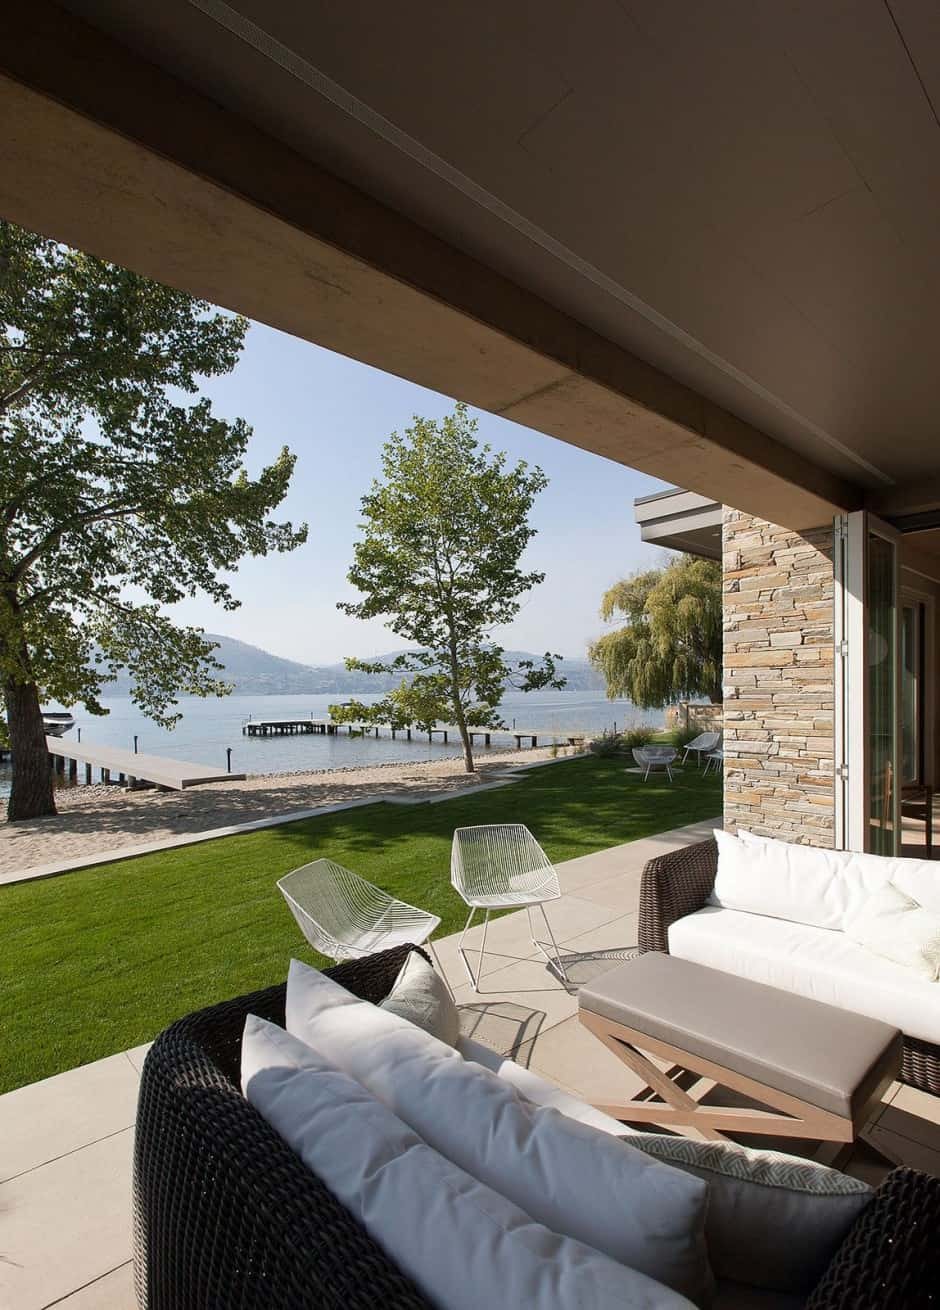 Lakeside Vacation Home Combines Natural Materials With